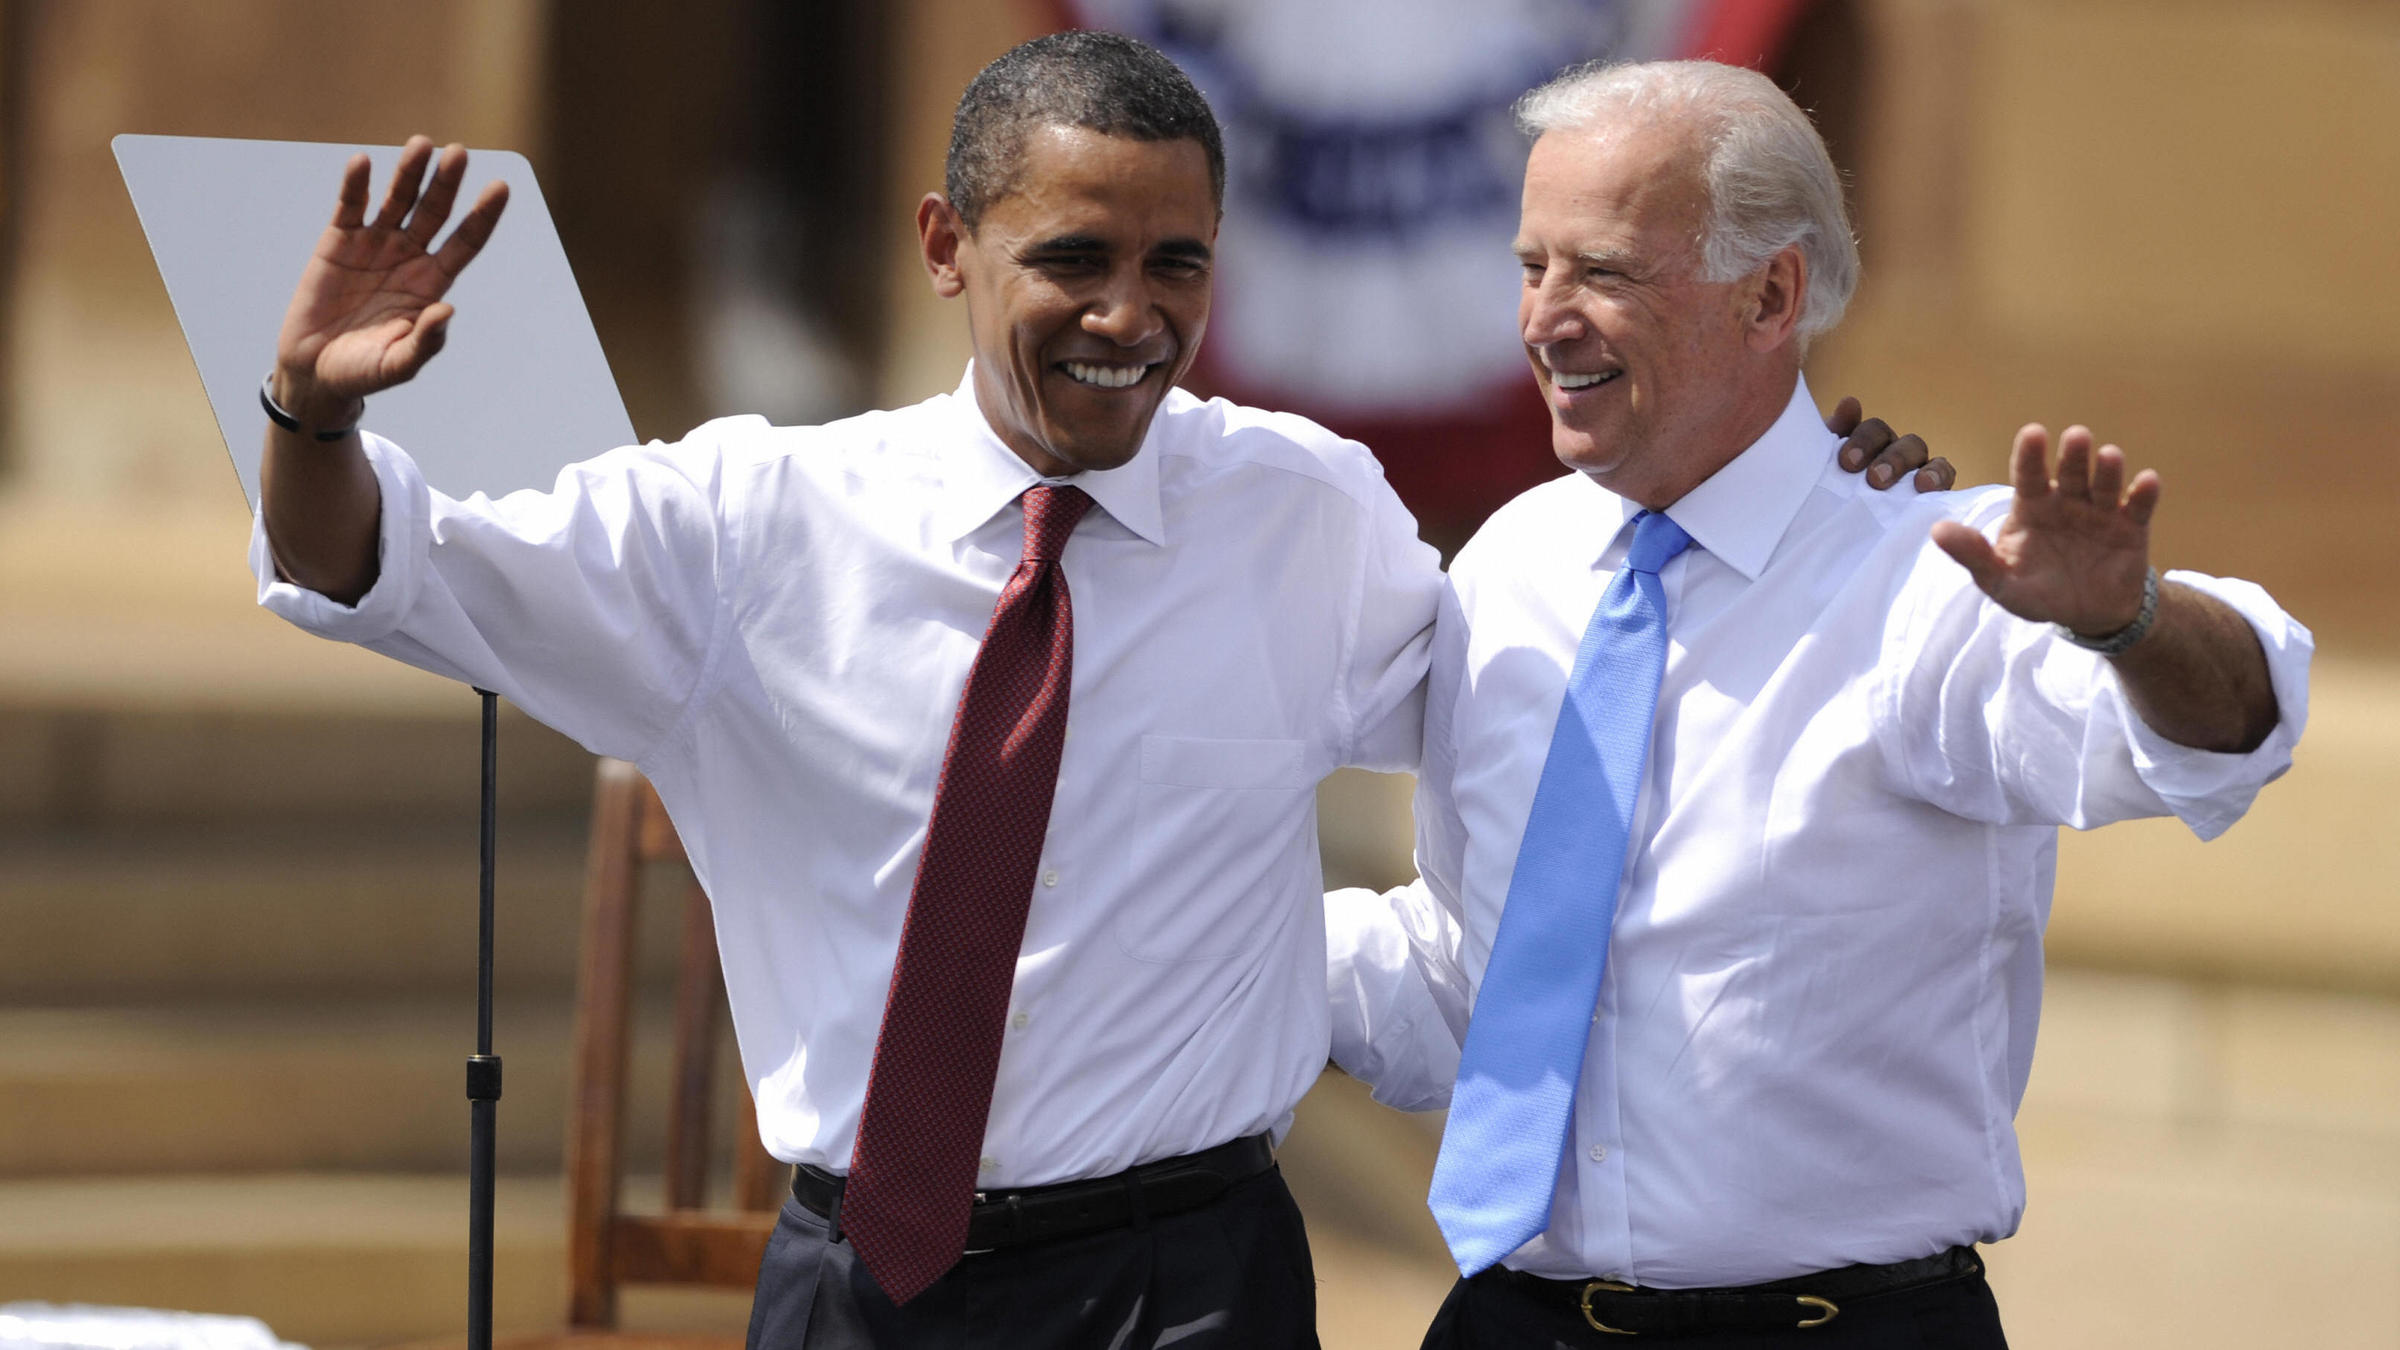 Biden S Vice Presidential Choice May Be Swayed By History Including His Own Vermont Public Radio